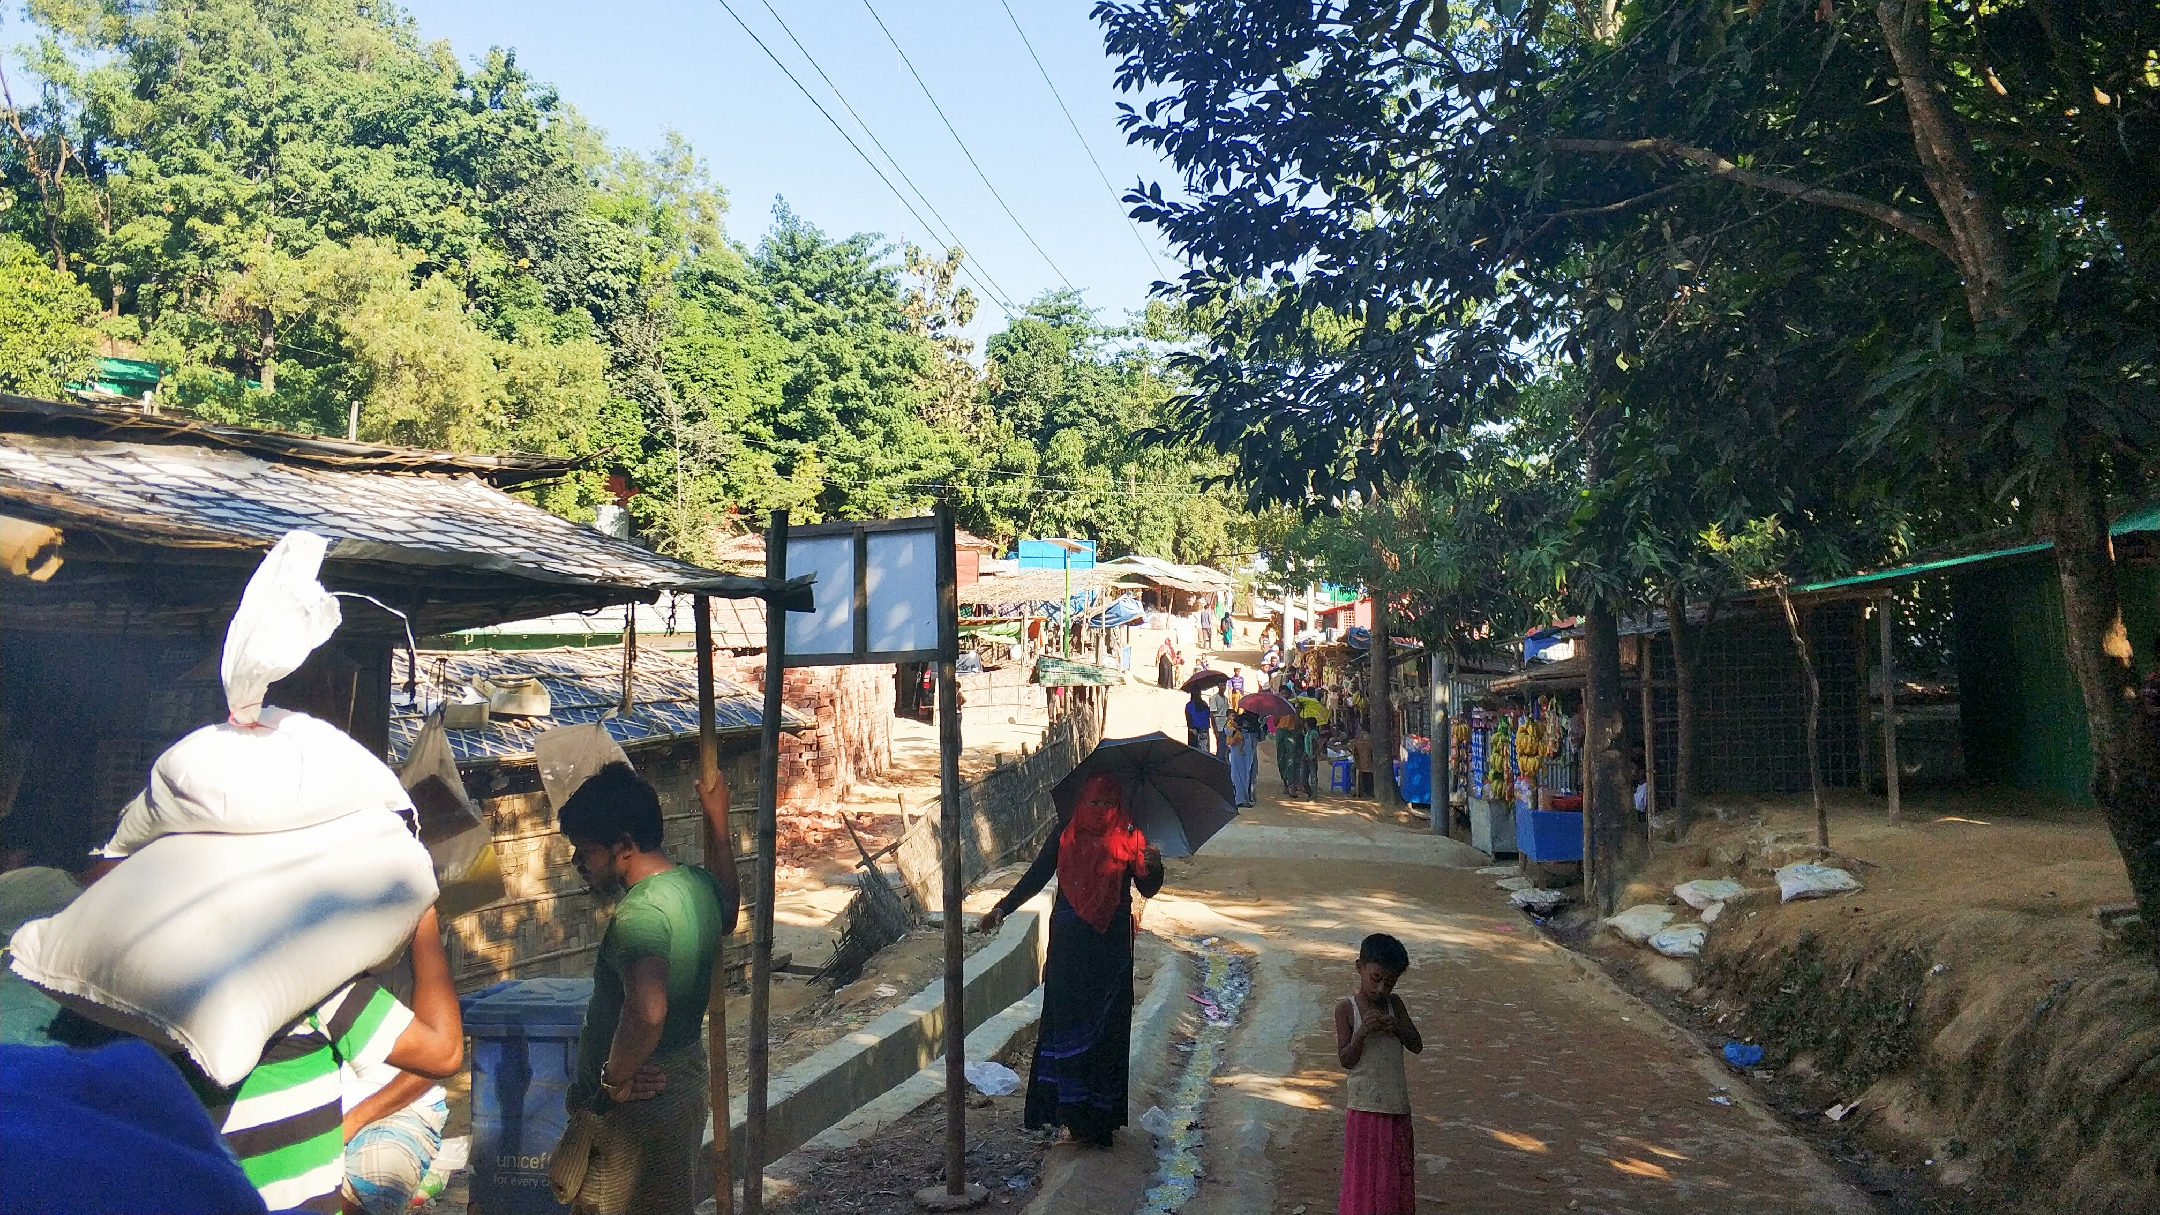 Paved roads inside the camp filled with busy pedestrians and playful children at kutupalong refugee camp